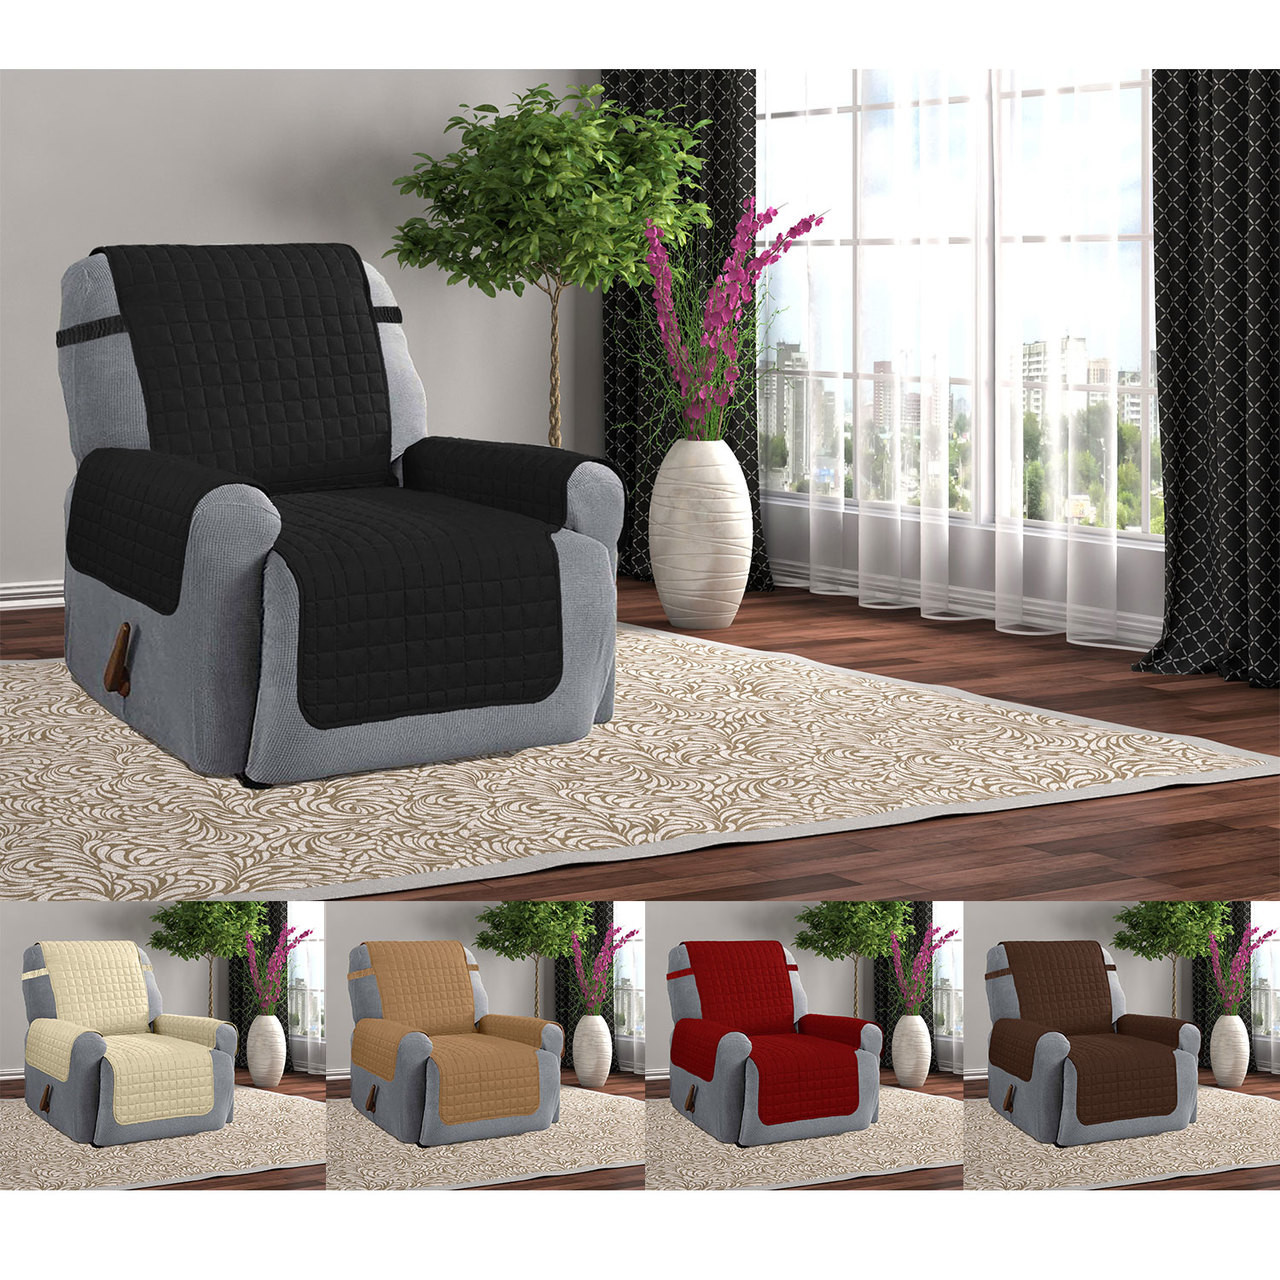 Quilted Microfiber Furniture Recliner Pet Protector Cover With Tucks U0026 Strap